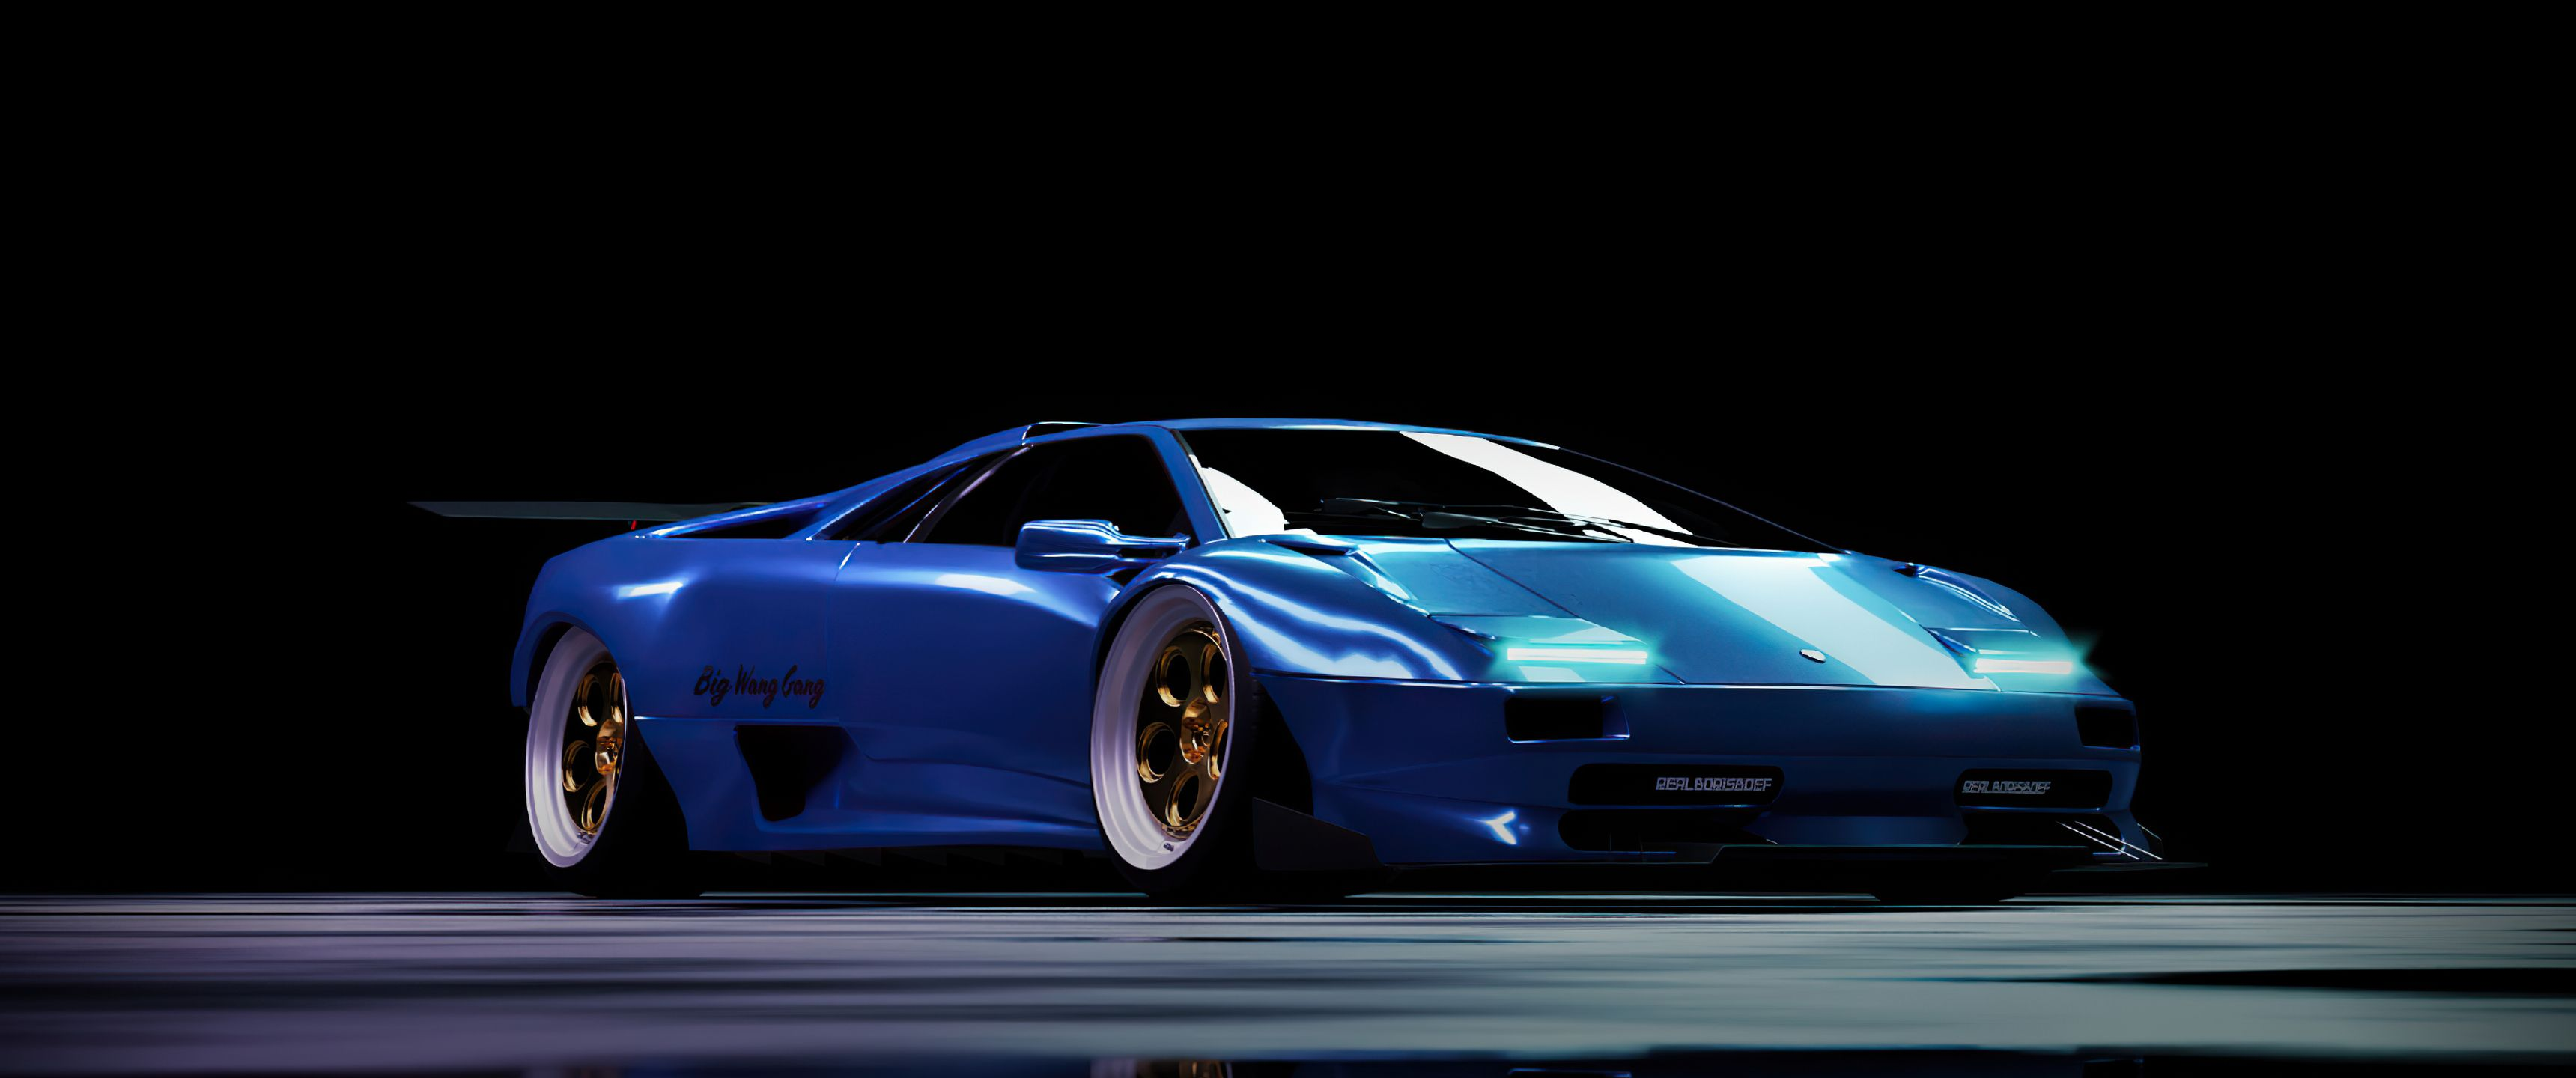 3440x1440 Blue Car Wallpapers Top Free 3440x1440 Blue Car Backgrounds Wallpaperaccess